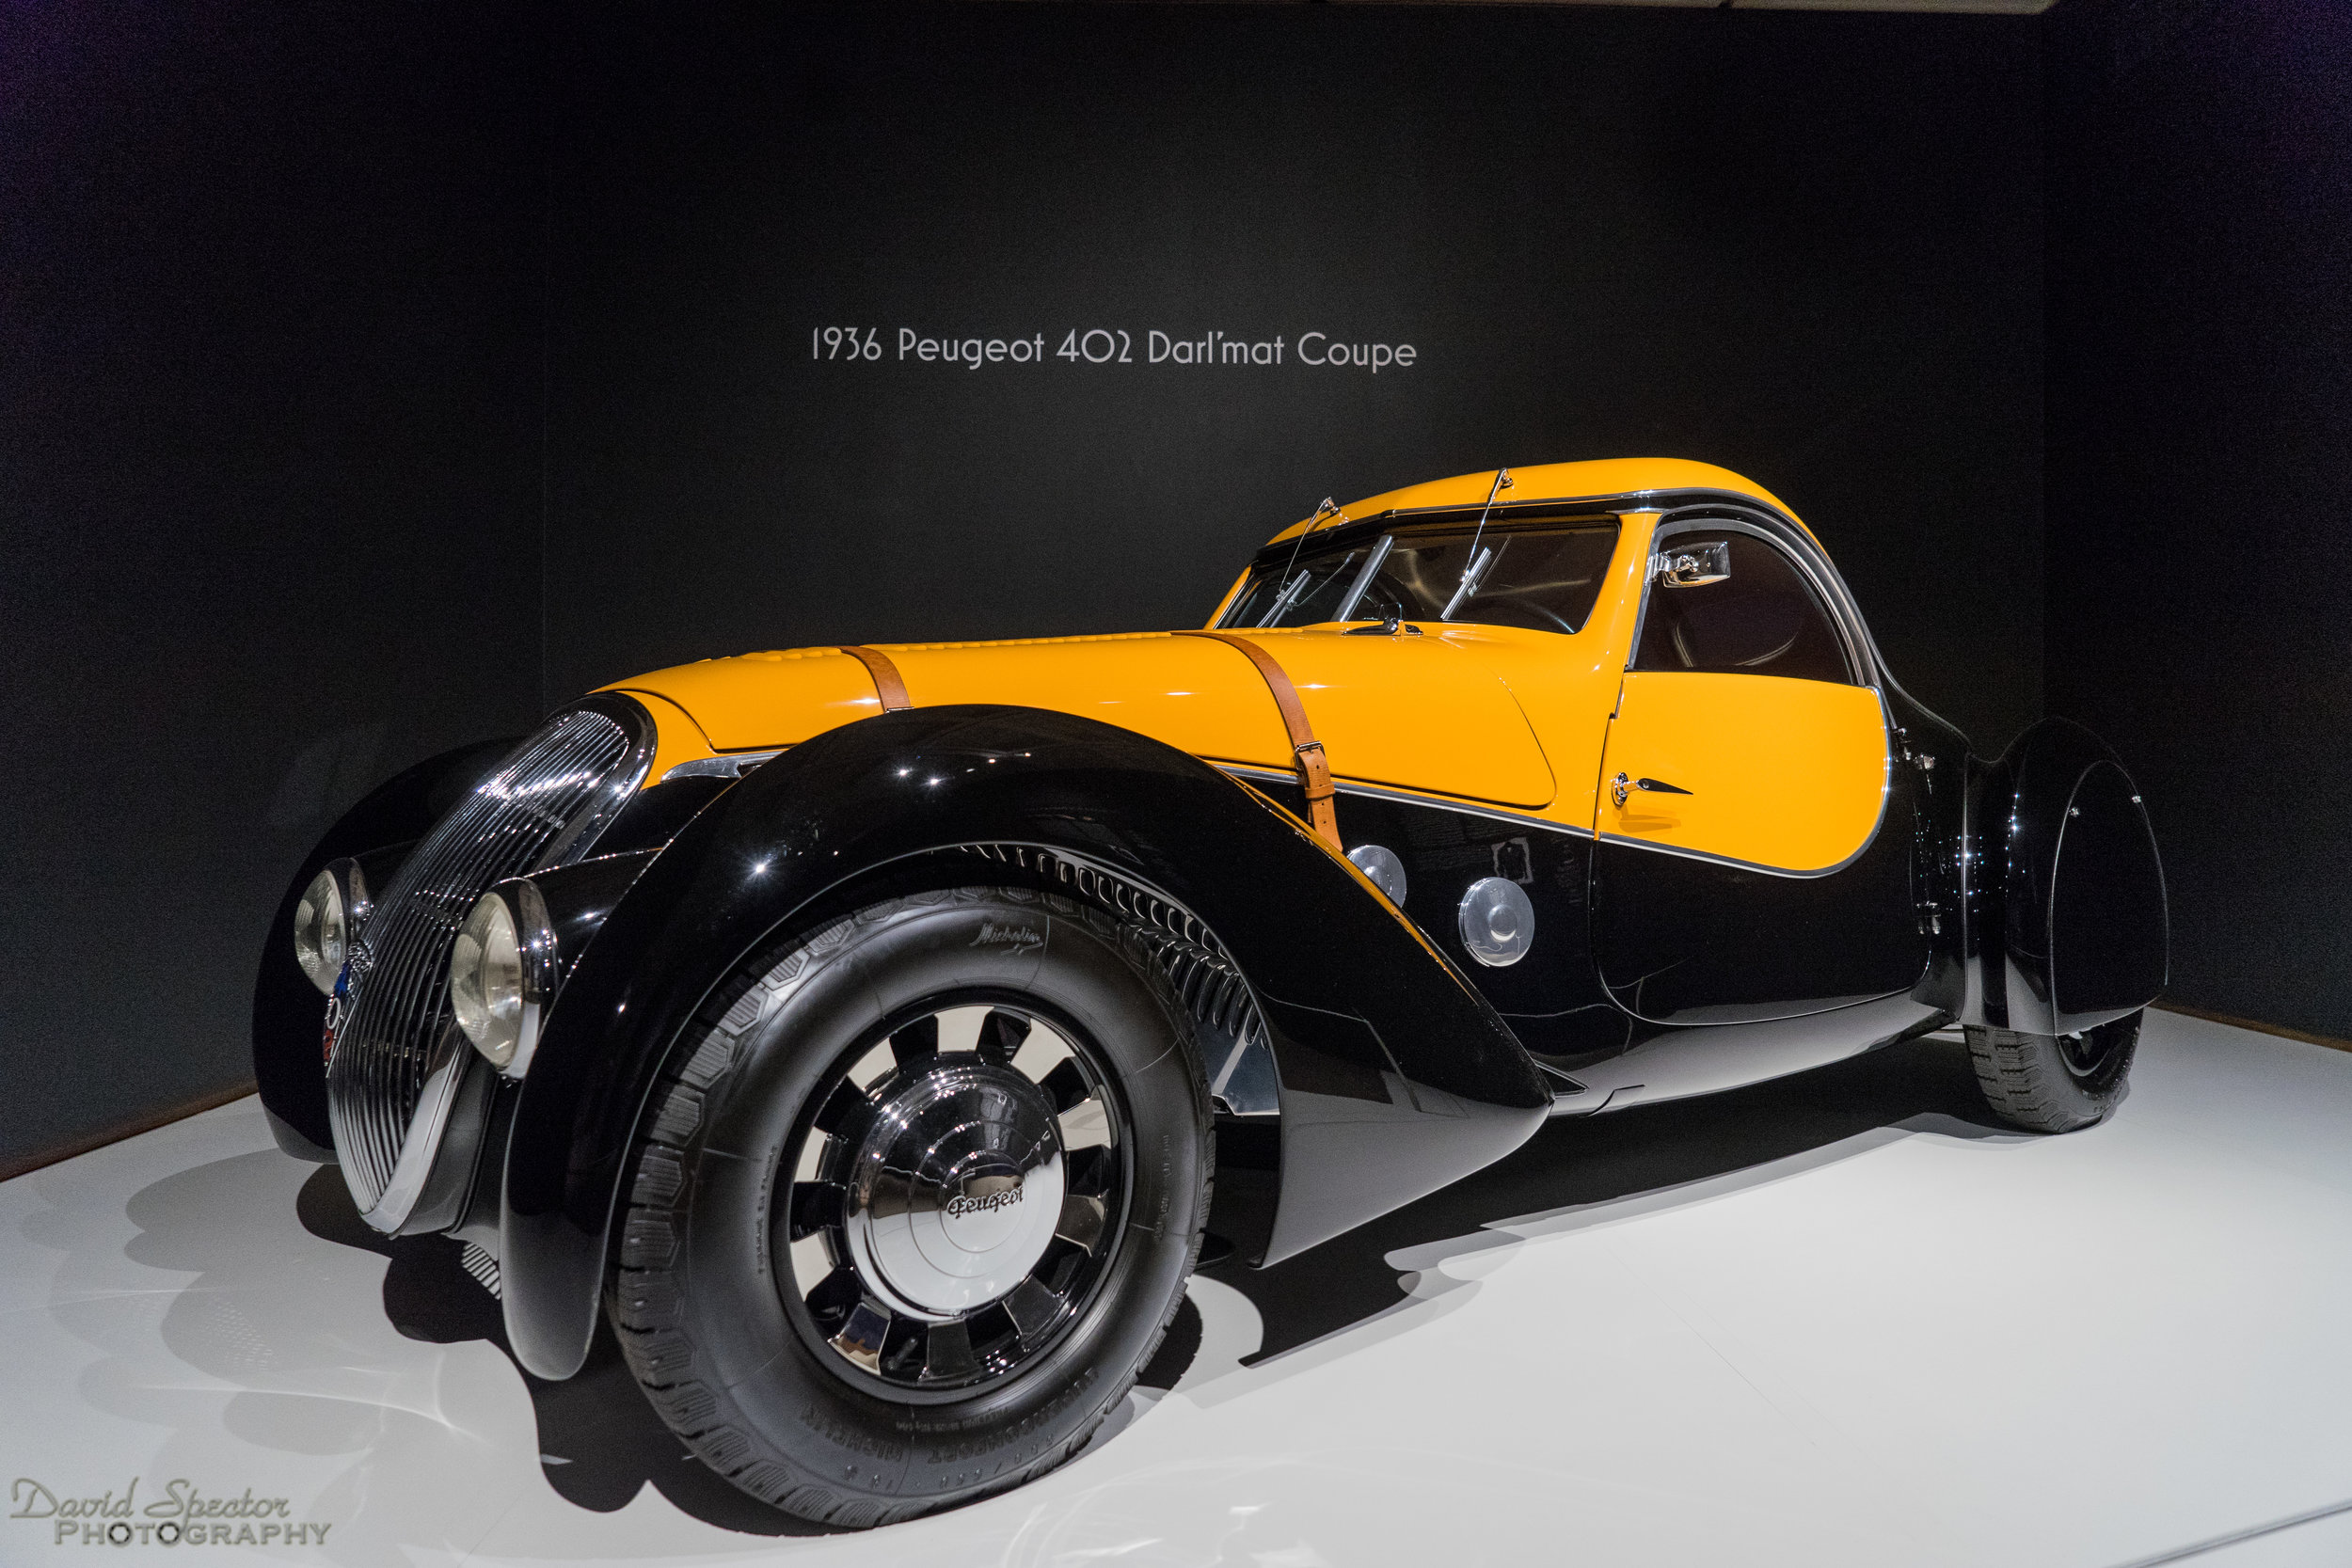 Finally to end out the year I went to the NCMA to shoot the Art Deco car exhibit.